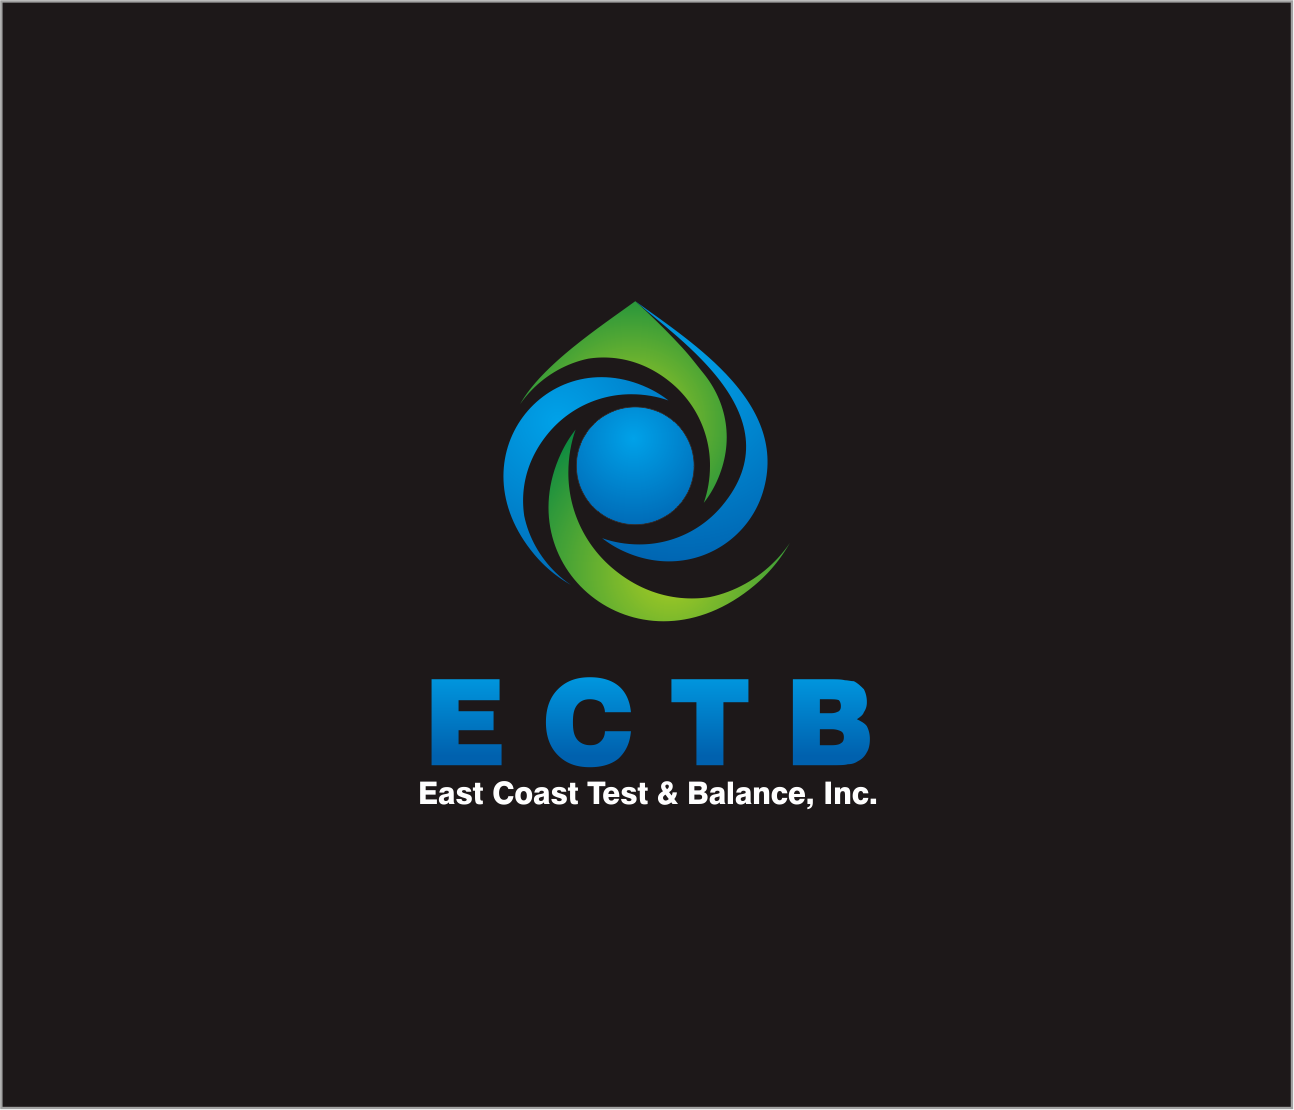 Logo Design by Armada Jamaluddin - Entry No. 61 in the Logo Design Contest Logo Design for East Coast Test & Balance, Inc. (ECTB).